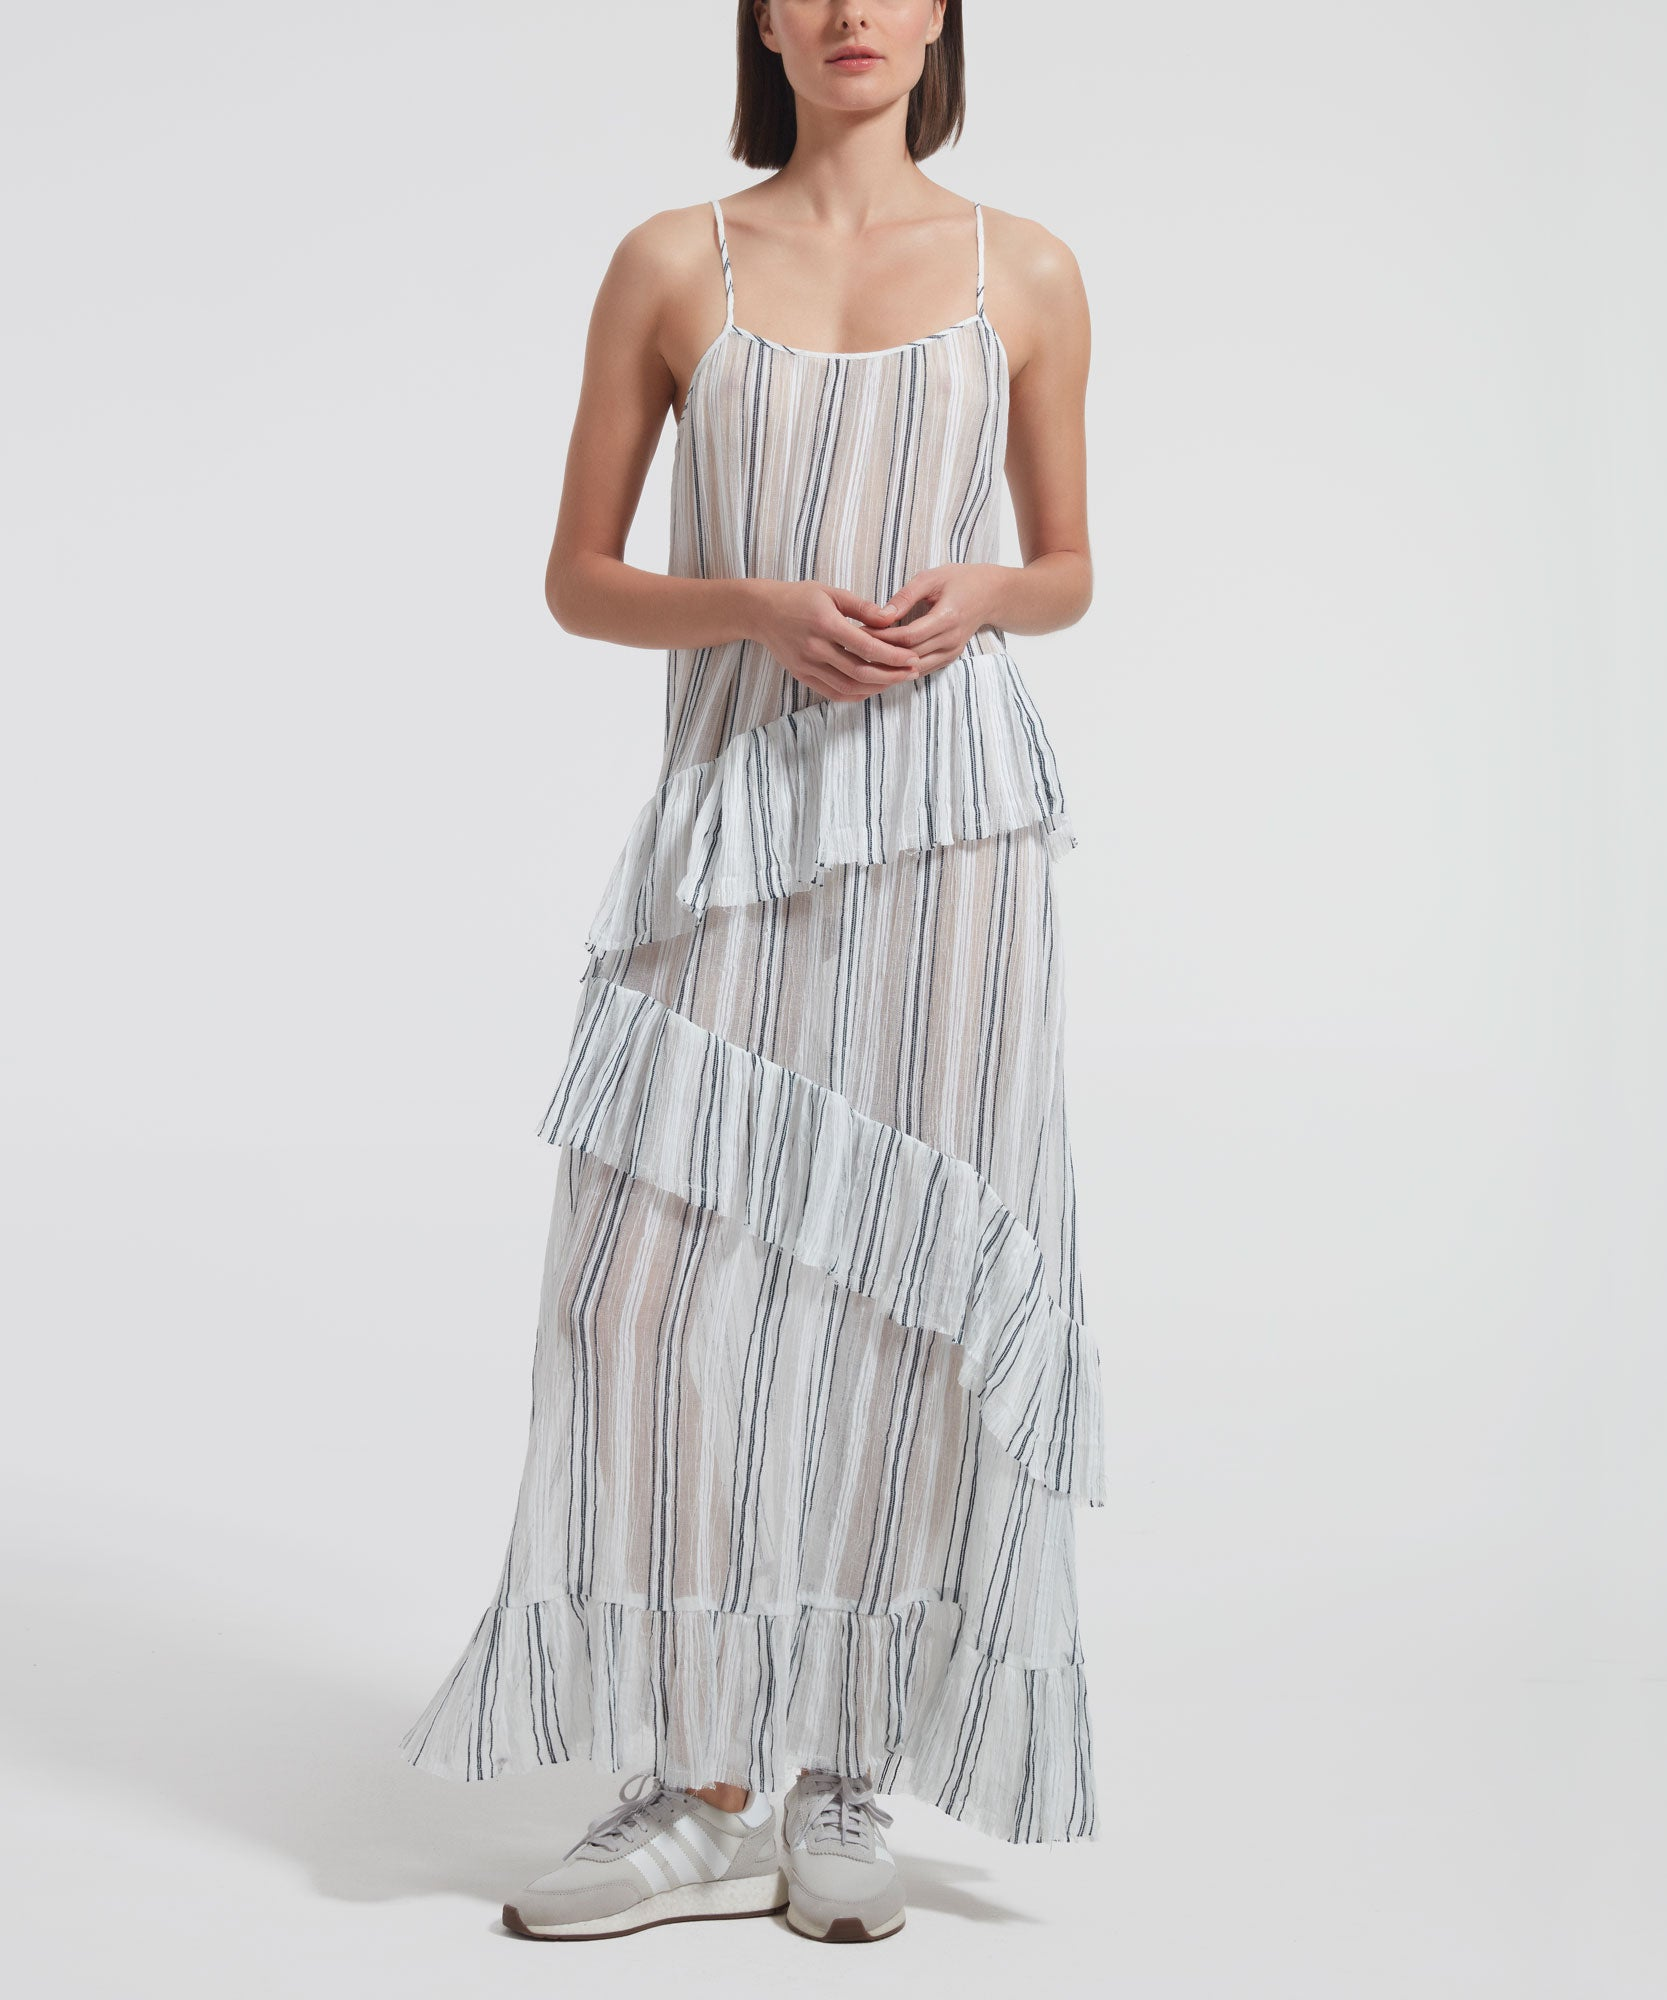 Chalk and Midnight Stripe Gauze Ruffle Slip Dress - Women's Sleeveless Dress by ATM Anthony Thomas Melillo